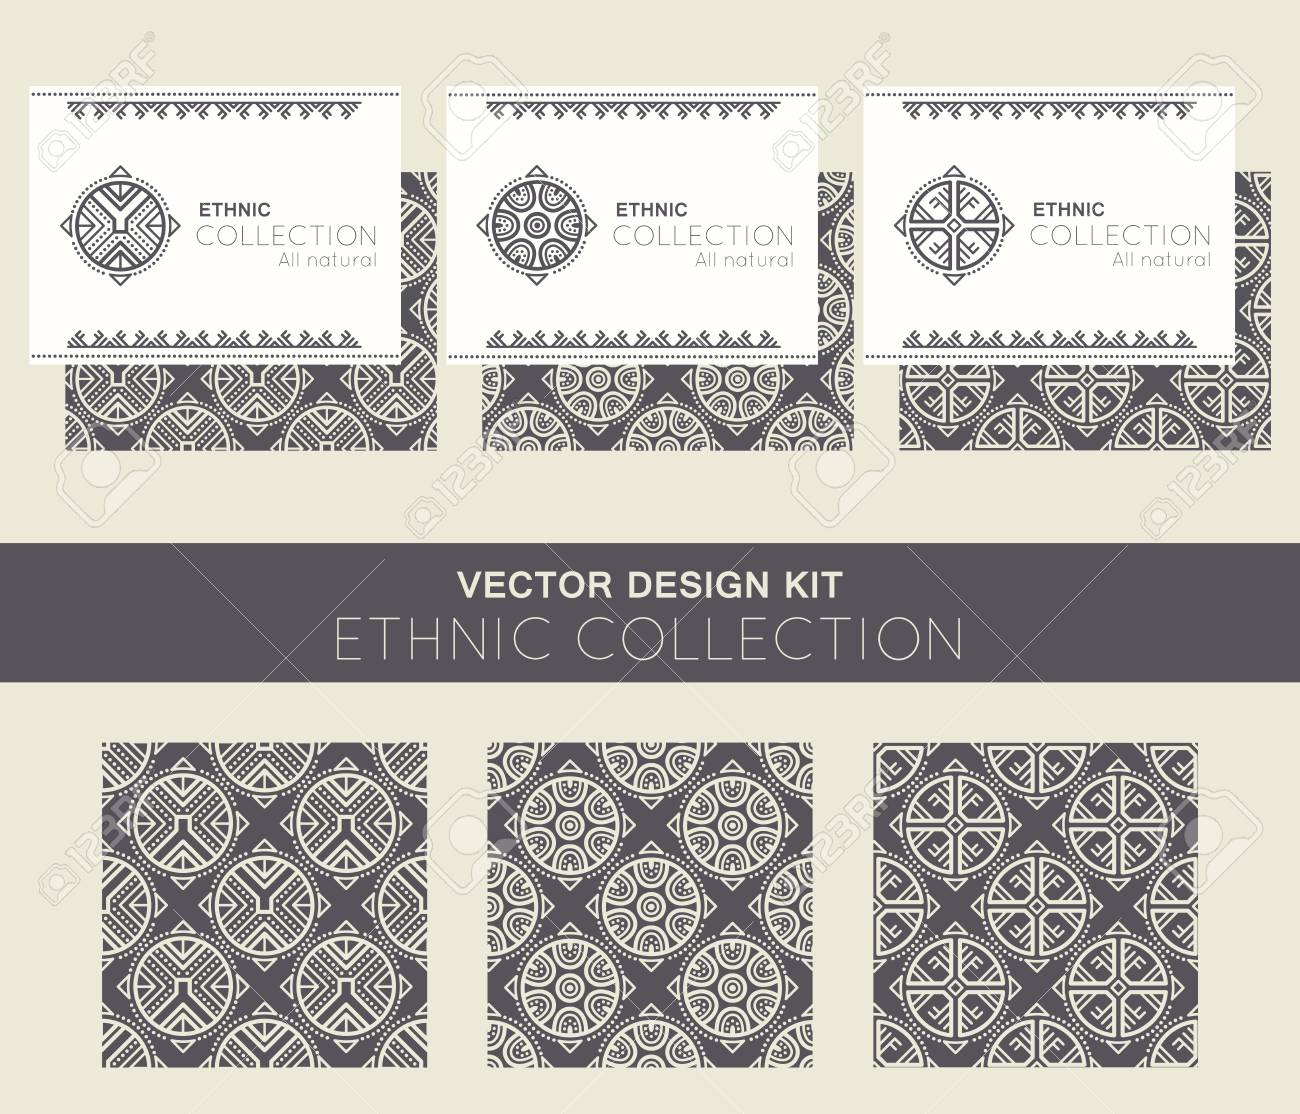 Vector Design Kit With Business Card Templates And Seamless Patterns ...